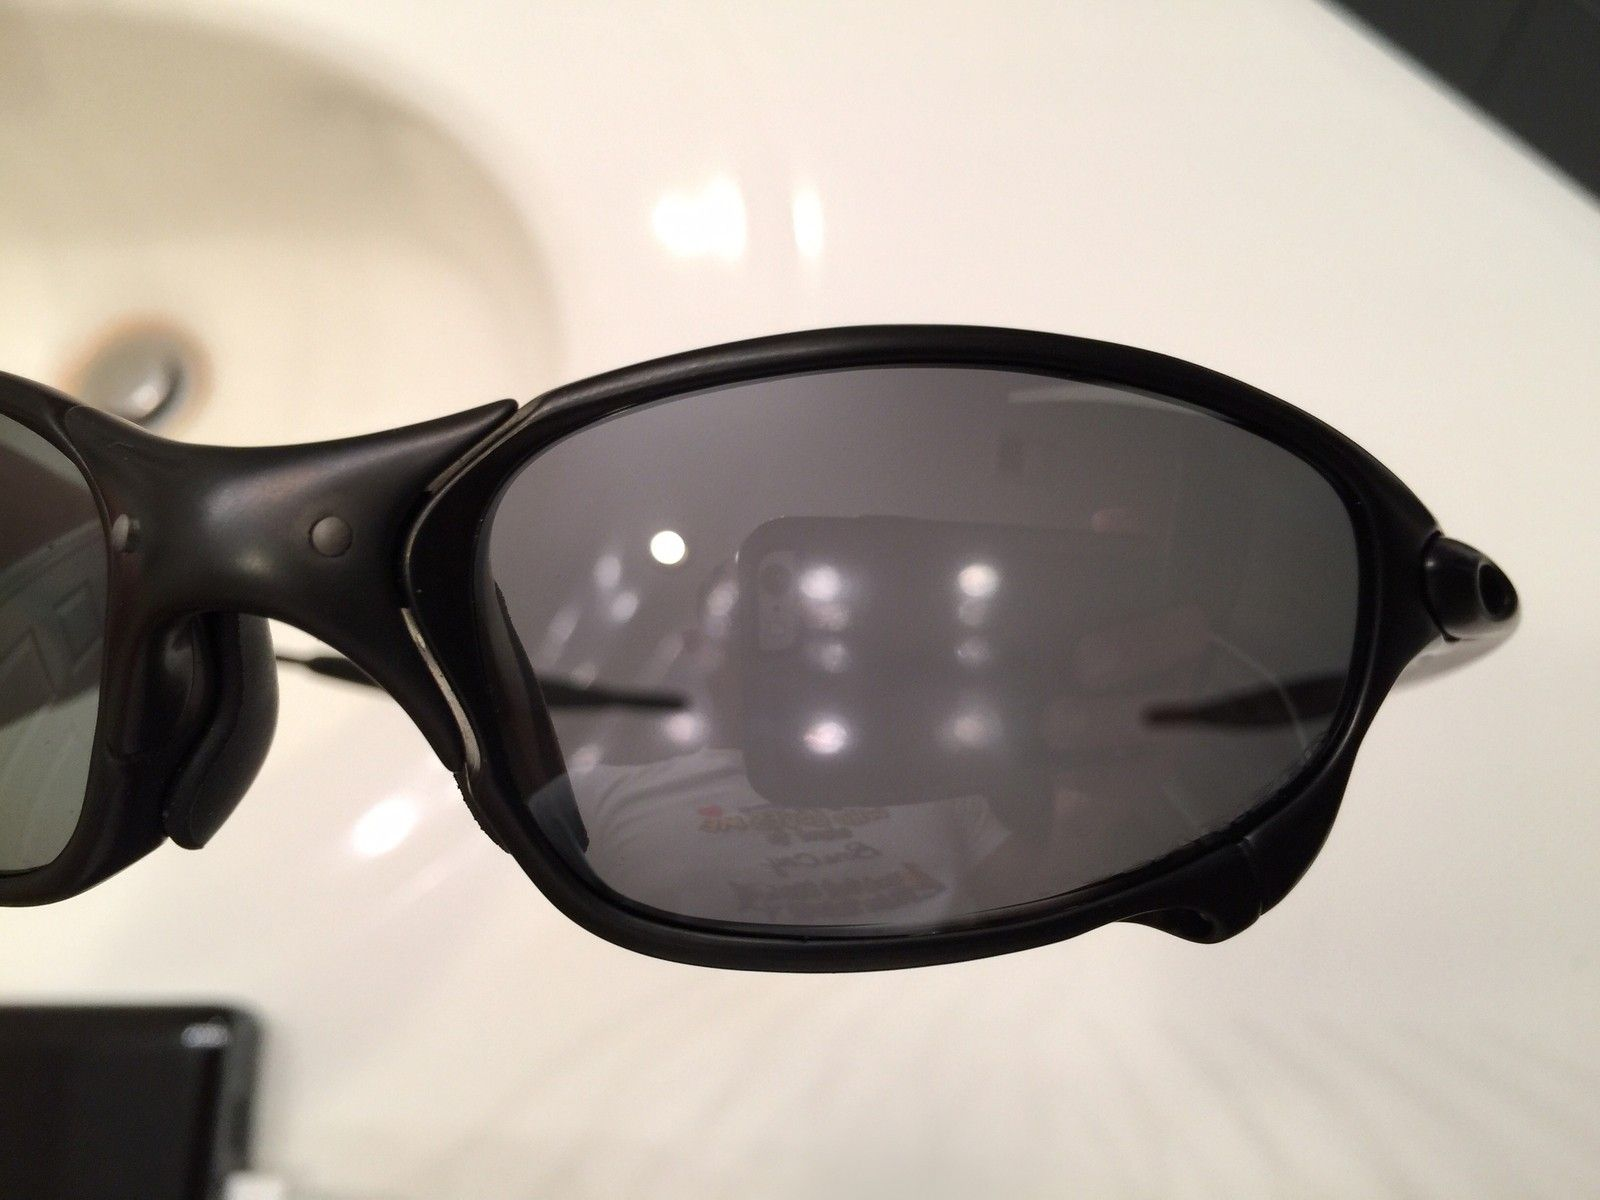 Used XX BI lens ***price dropped*** - IMG_1660.JPG